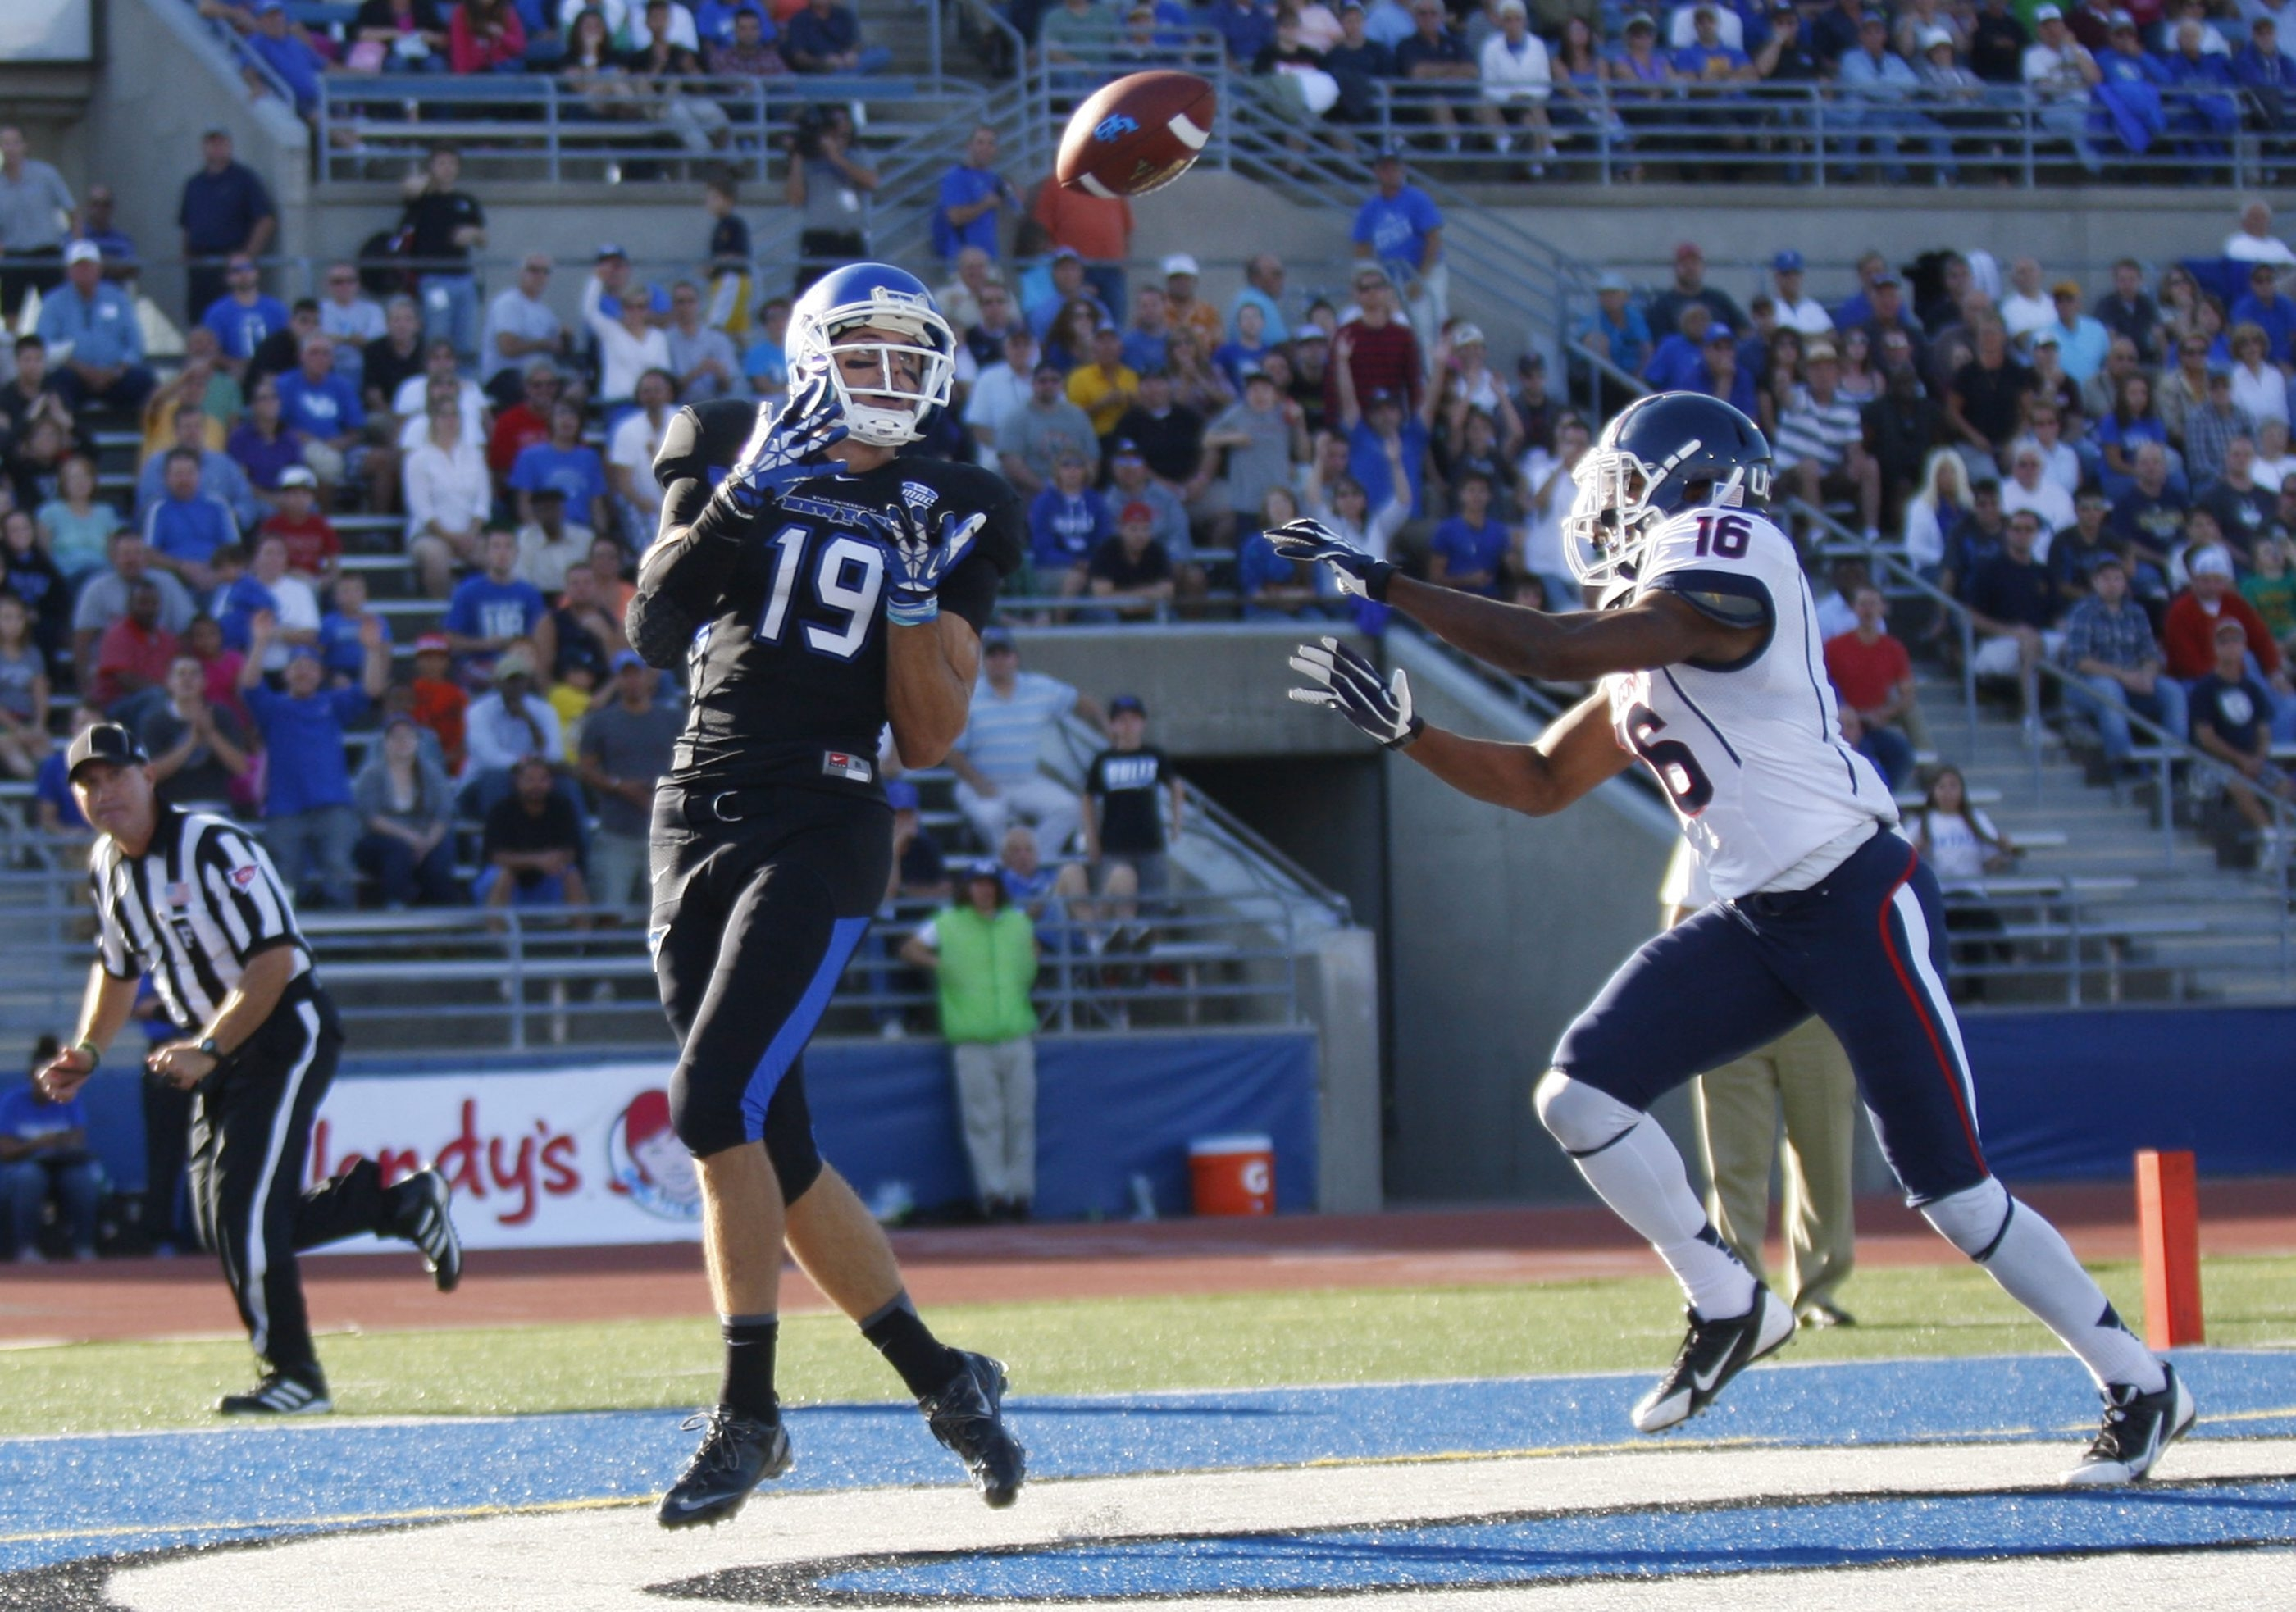 UB's Alex Neutz beats Connecticut defender Bryon Jones for a touchdown in the second quarter Saturday at UB Stadium.